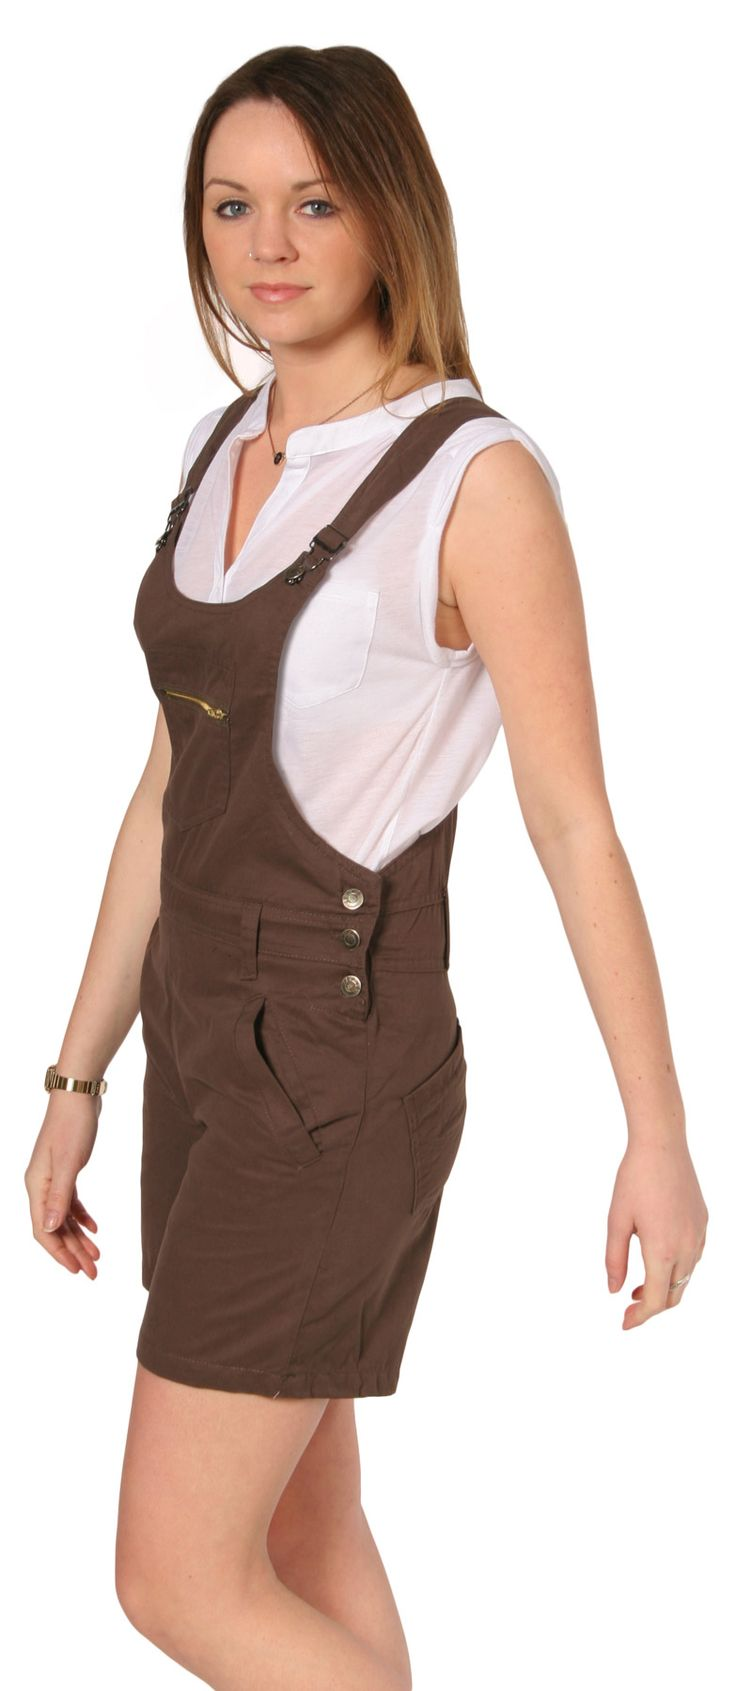 Carhartt & Other Work Clothing Available at the Lowest Prices Guaranteed.